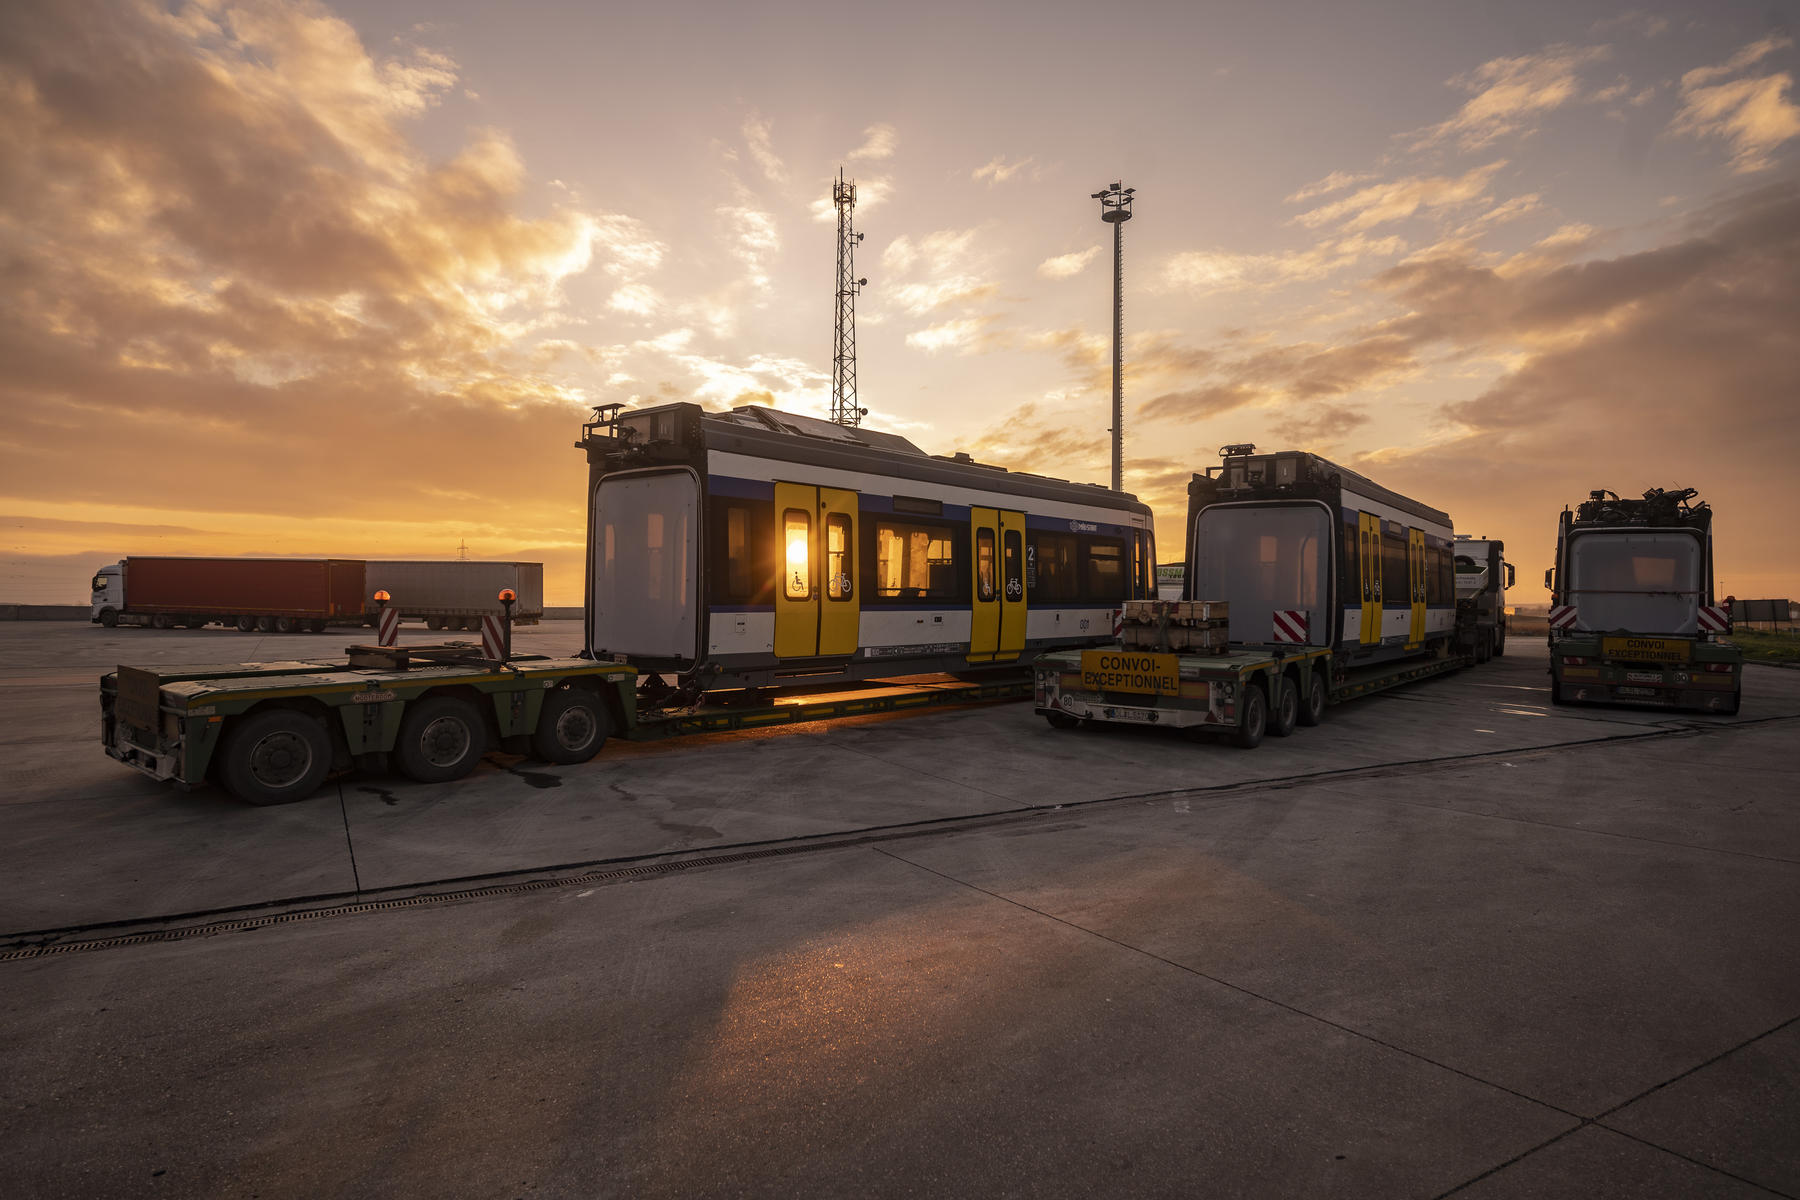 First Stadler Citylink tram-train arrives in Hungary